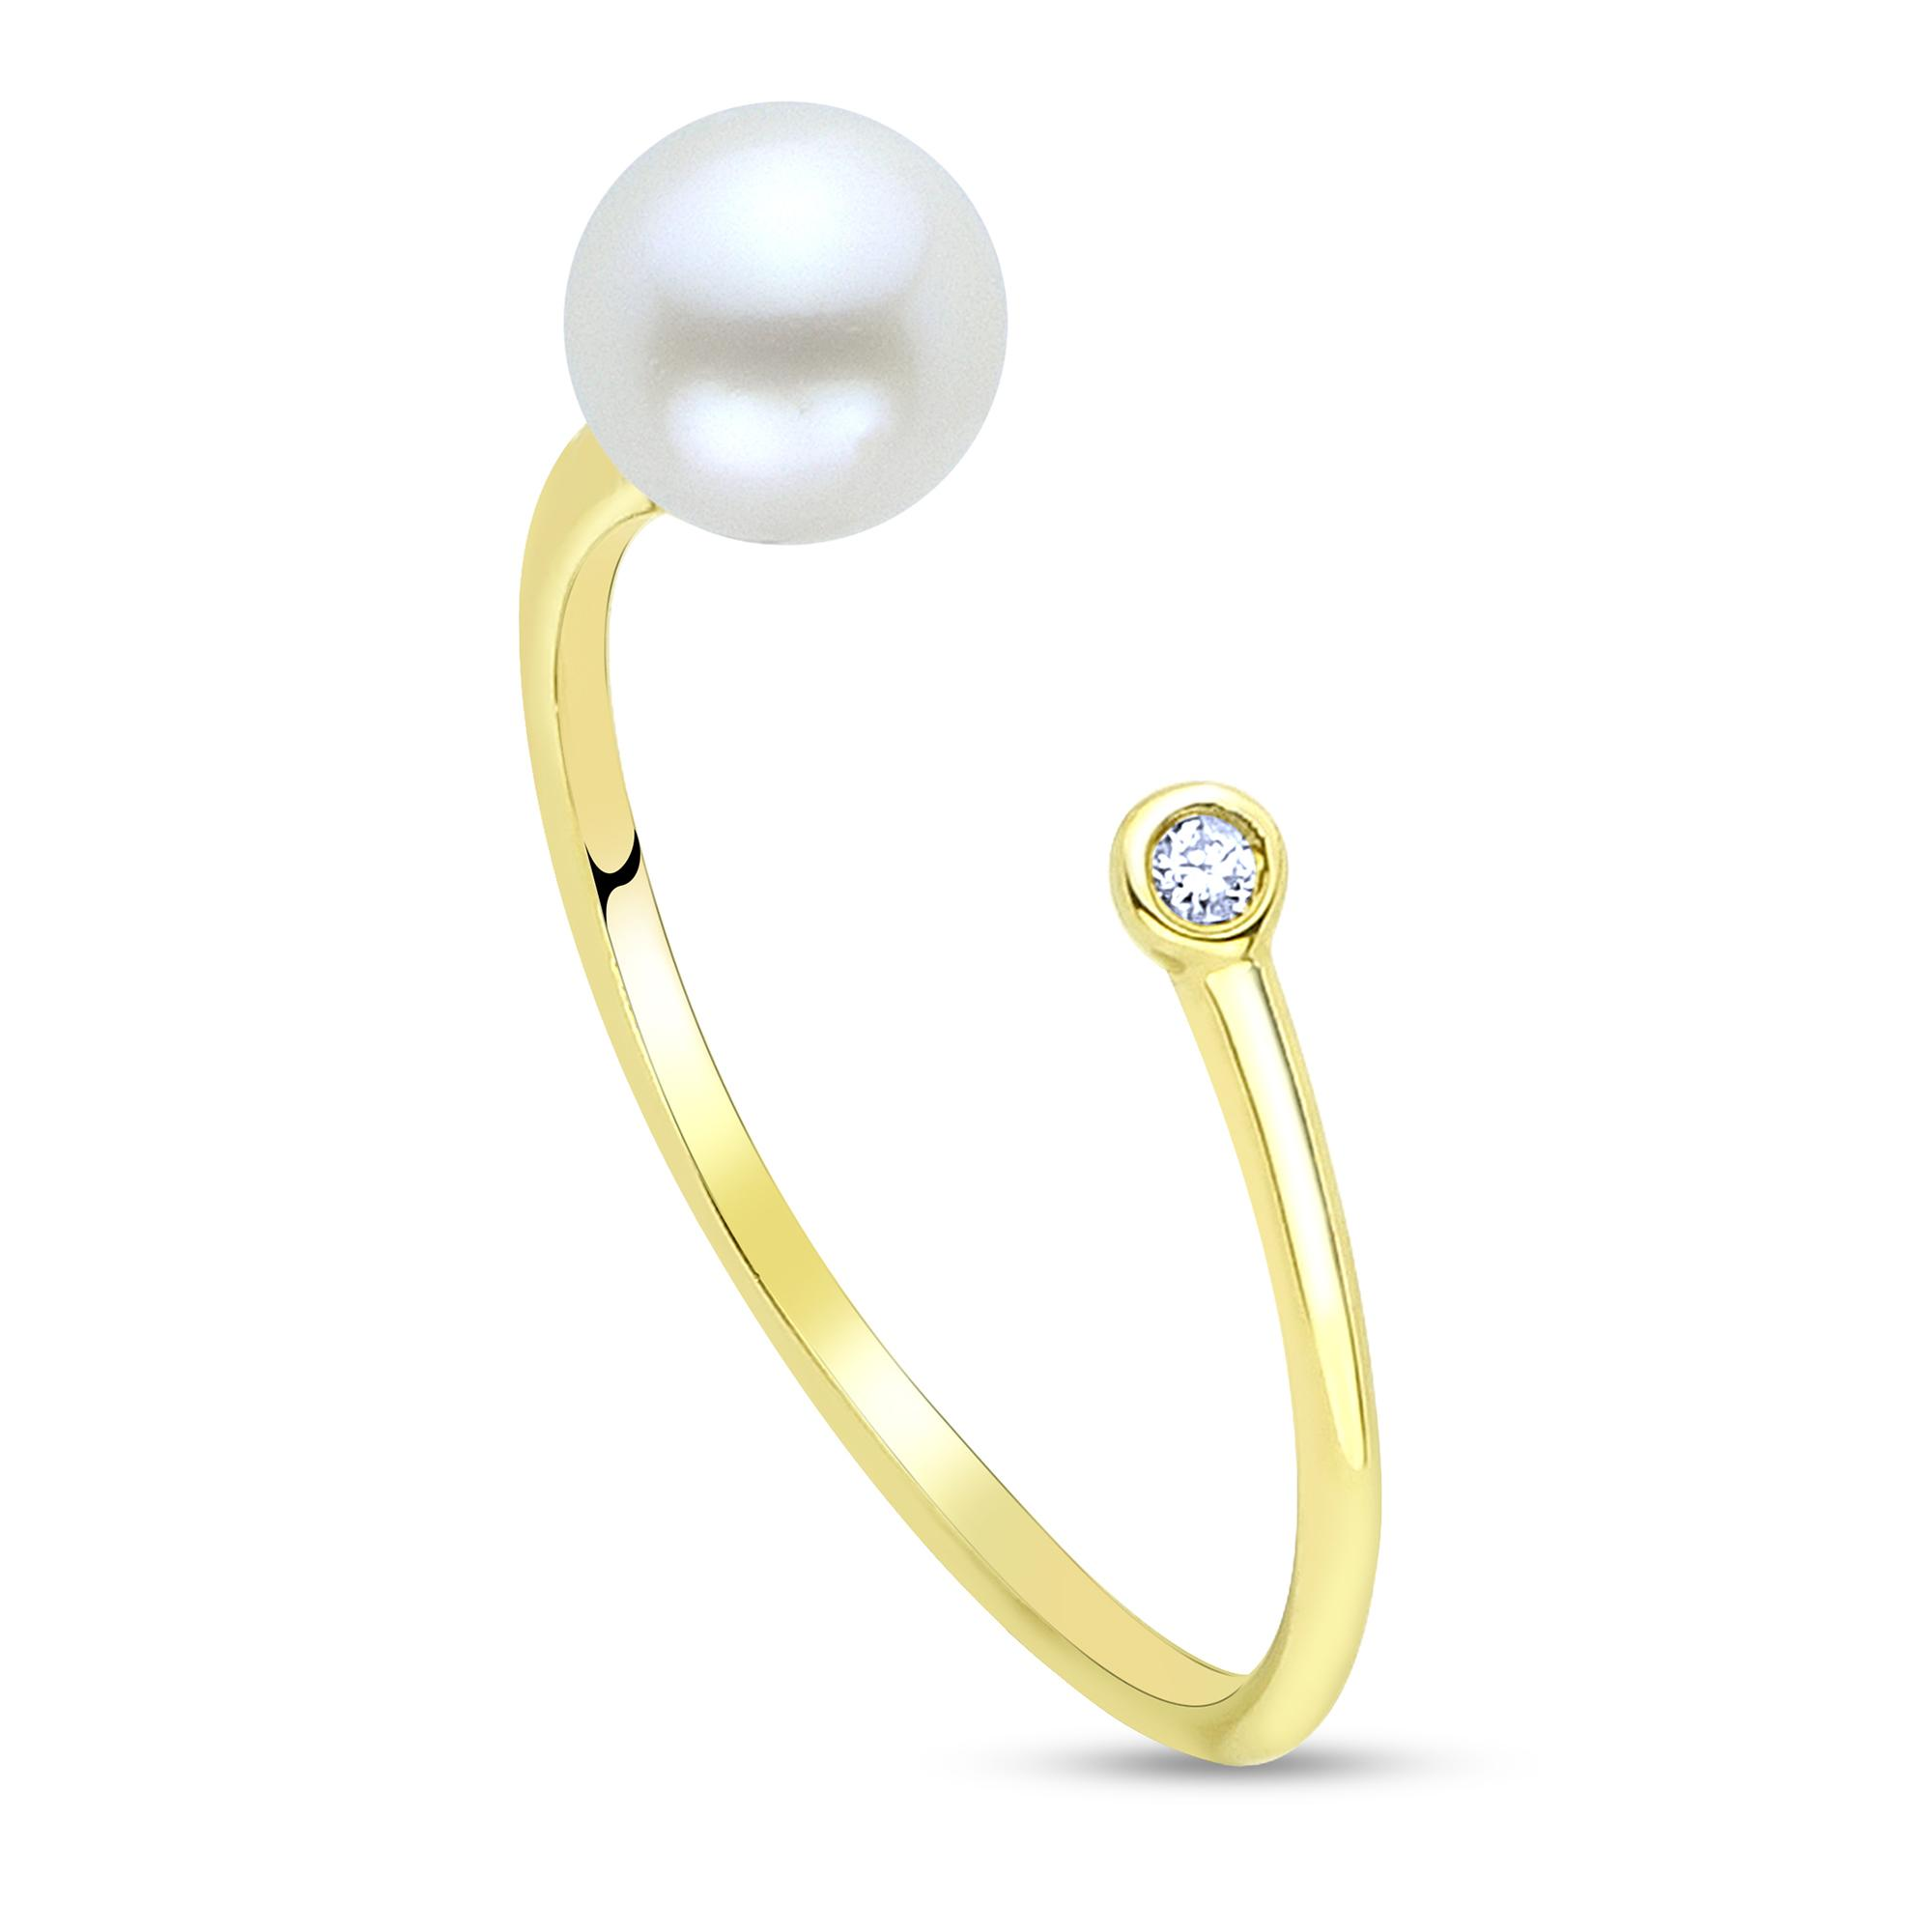 d529d5703 14K Yellow Gold Freshwater Pearl Ring 917200/FW | Rings from Vincent ...